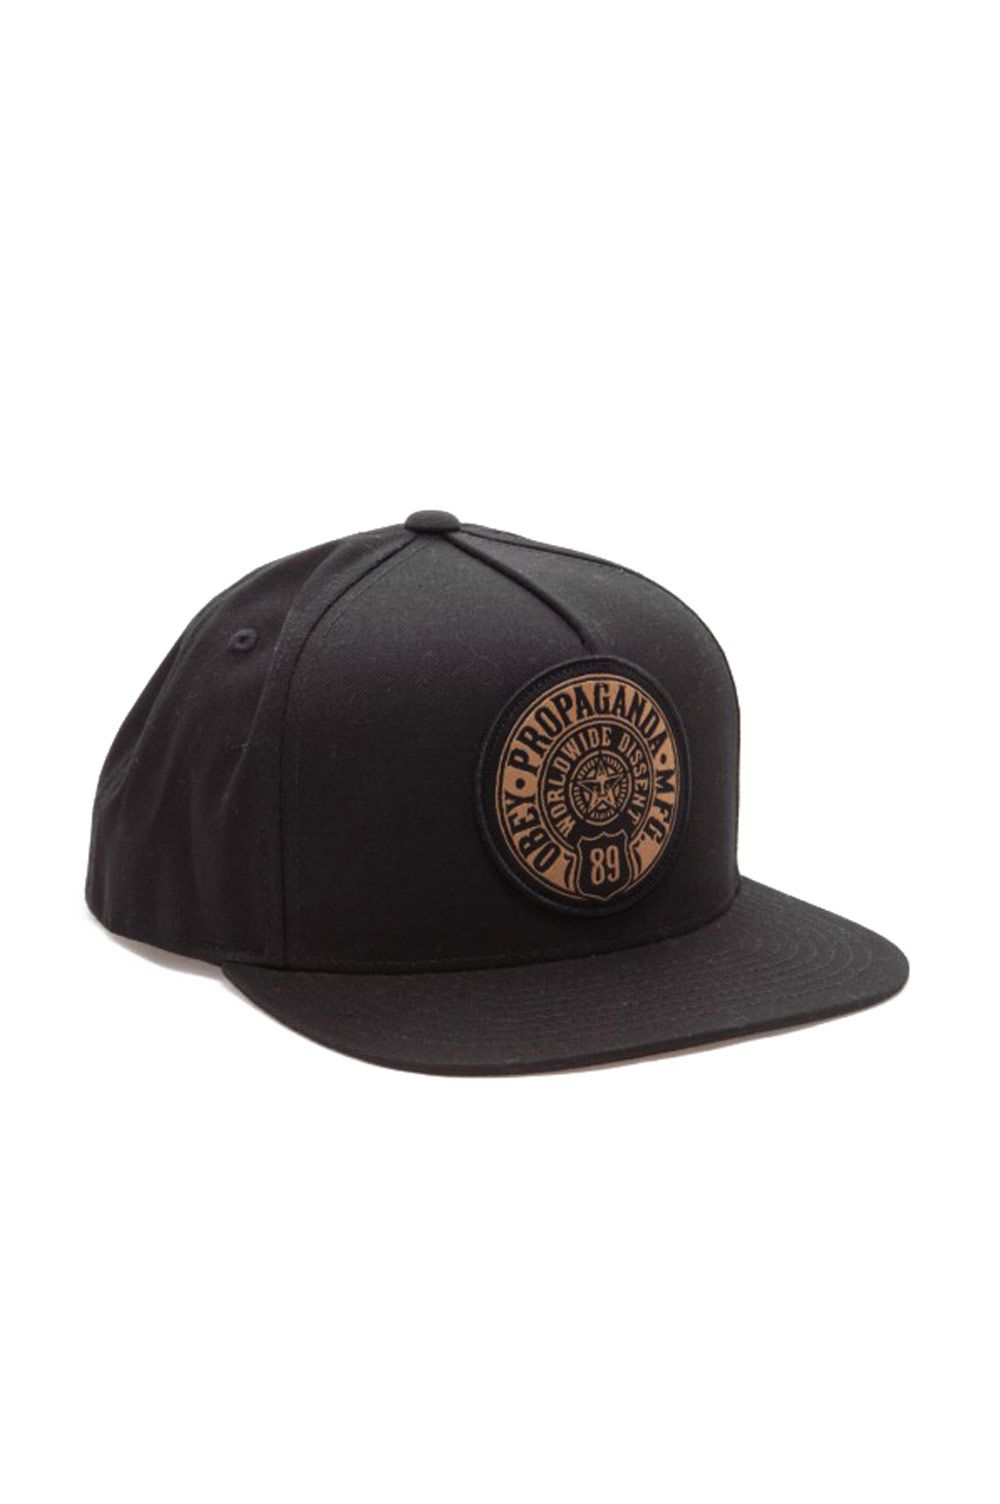 cec044f9bf3611 The 89 Prop Snapback Hat from Obey. Standard profile fit. | hats ...